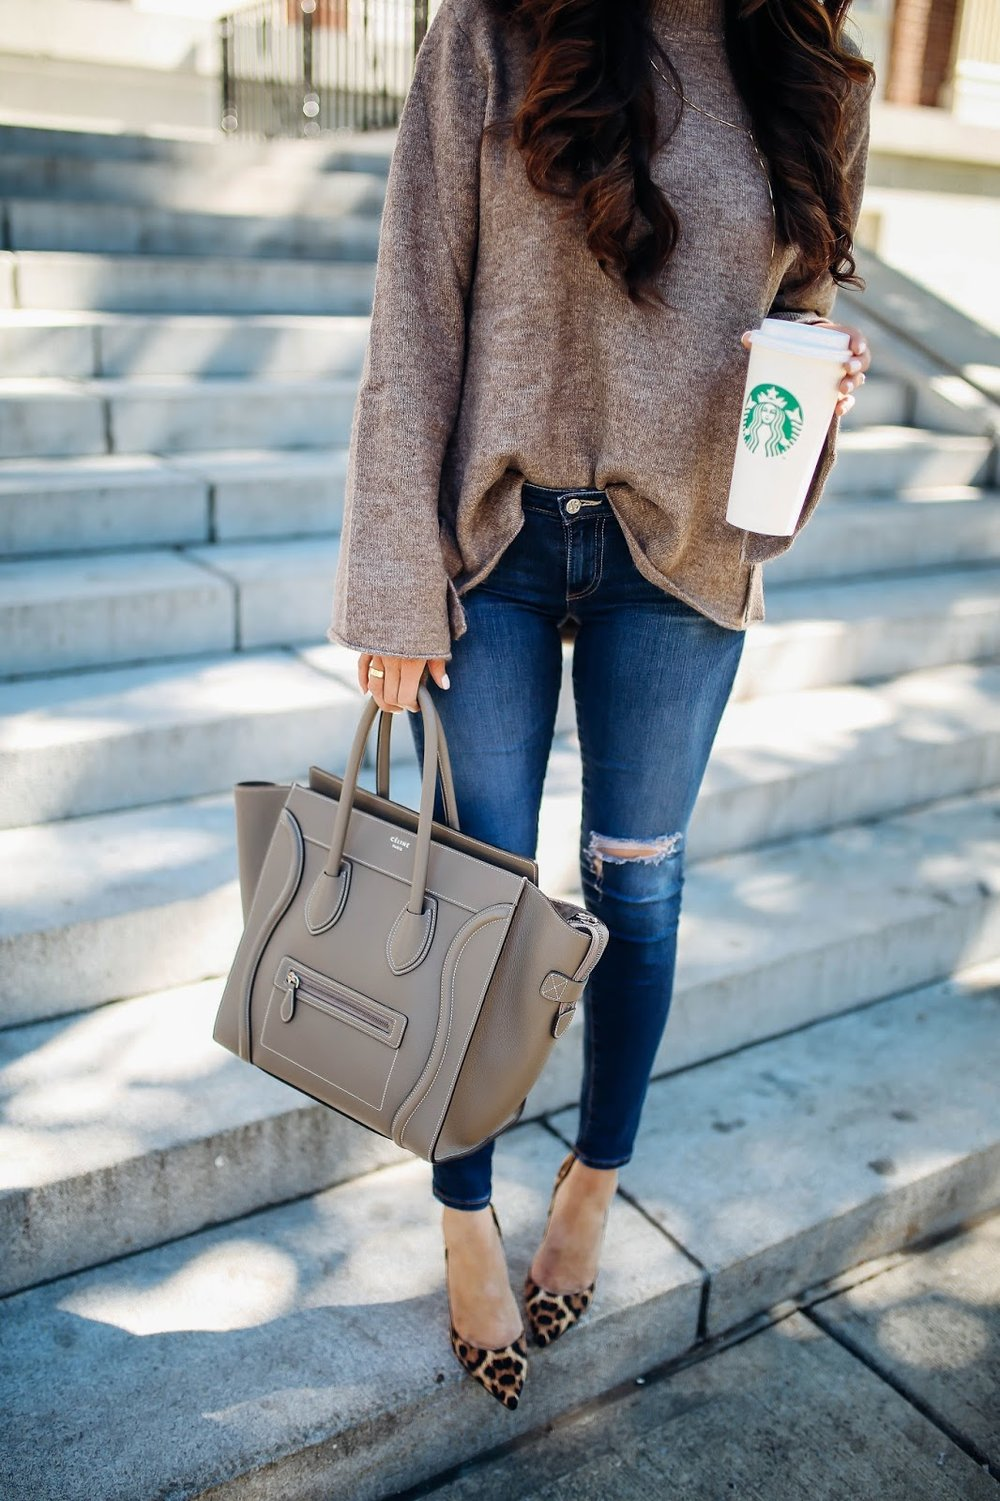 SWEATER: Zara (similar styles   HERE   &   HERE   - I have of those!) | DENIM:   AG Jeans   (  similar under $50 here  ) | PUMPS:   Christian Louboutin   (similar   here   &   here  ) | NECKLACE: H. Audrey (  similar here  ) | SUNGLASSES:   Ray-Ban   | HANDBAG: Celine (  dupe HERE  ) |